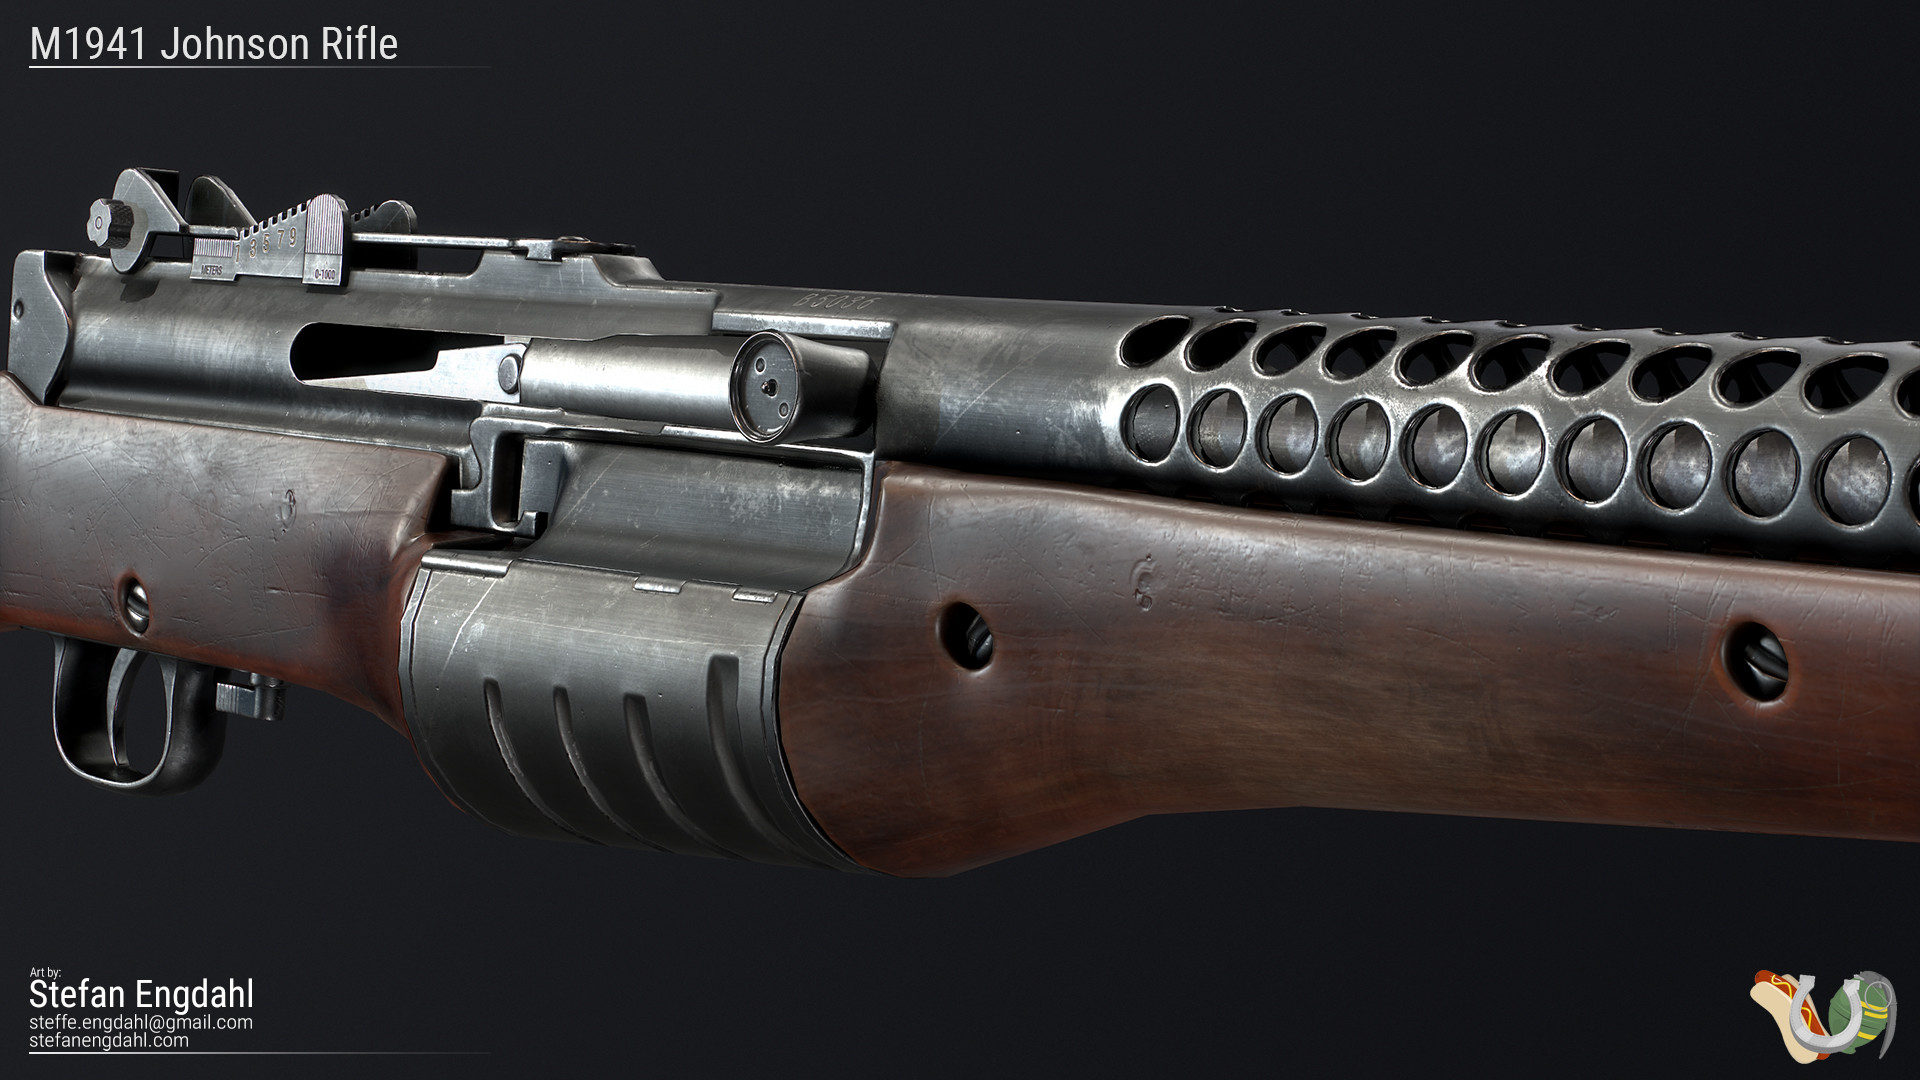 Stefan engdahl m1941johnsonrifle4